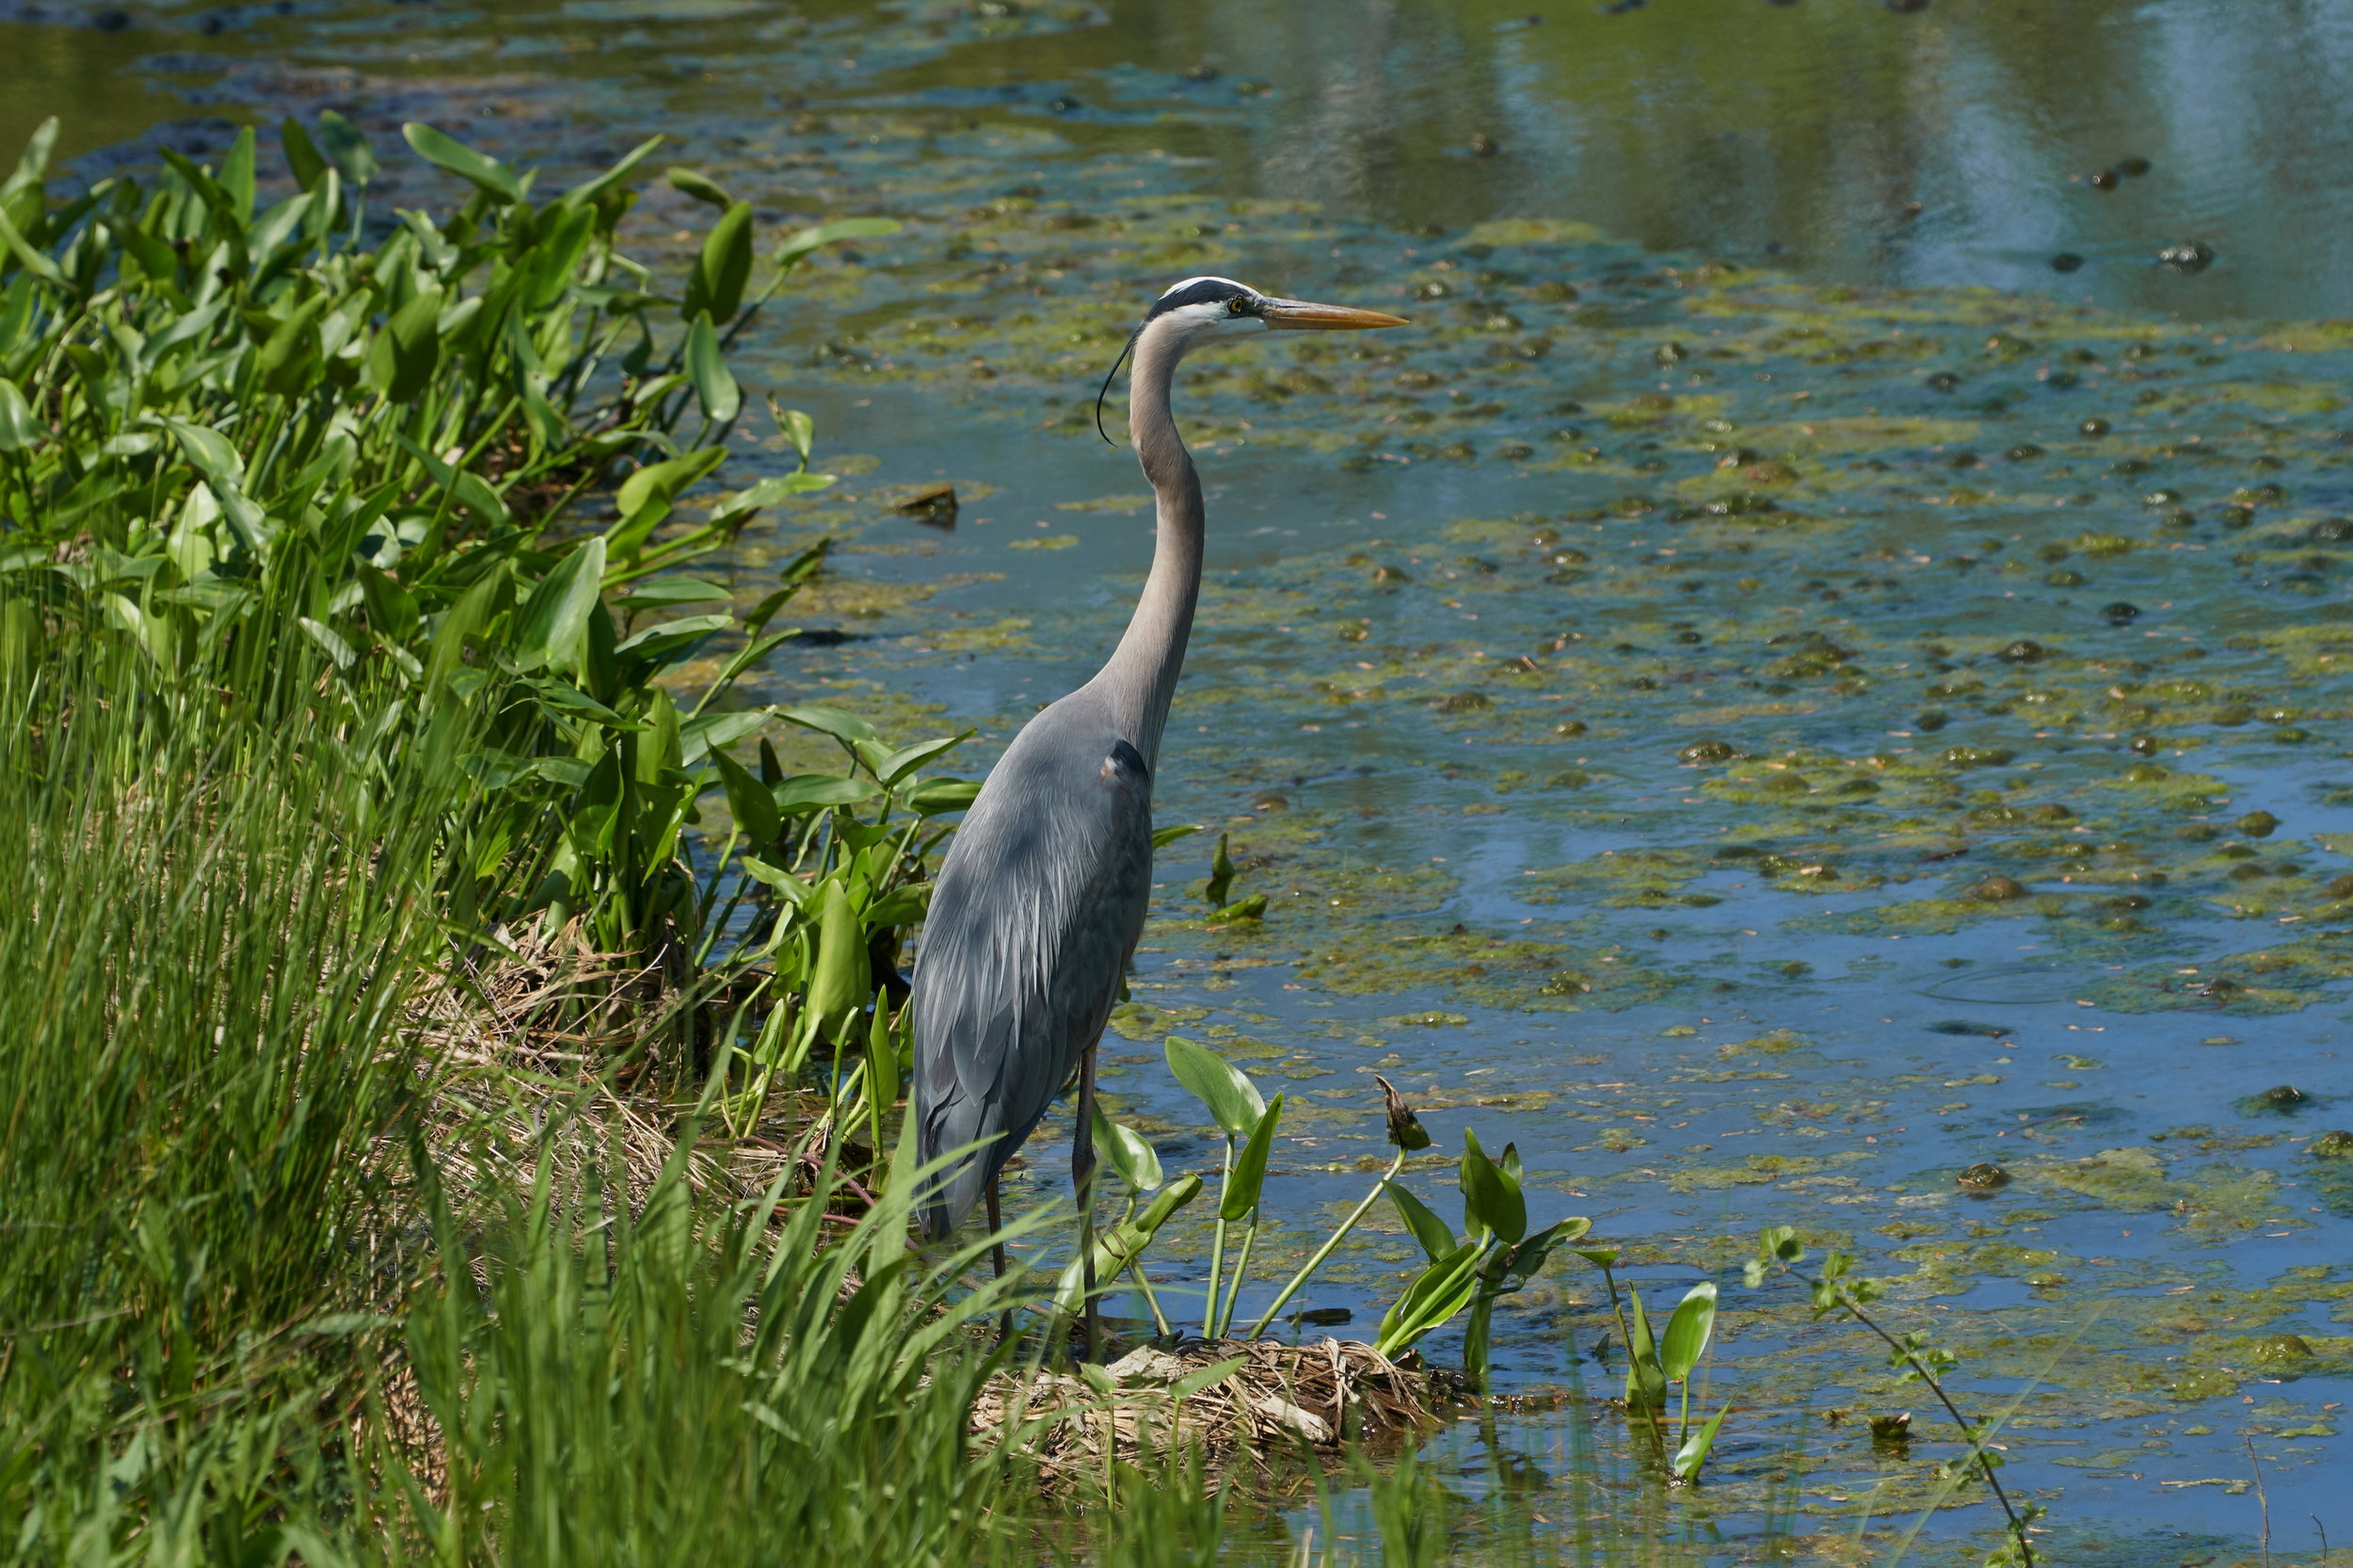 Great blue heron 16 May 09 2018_resize.jpg